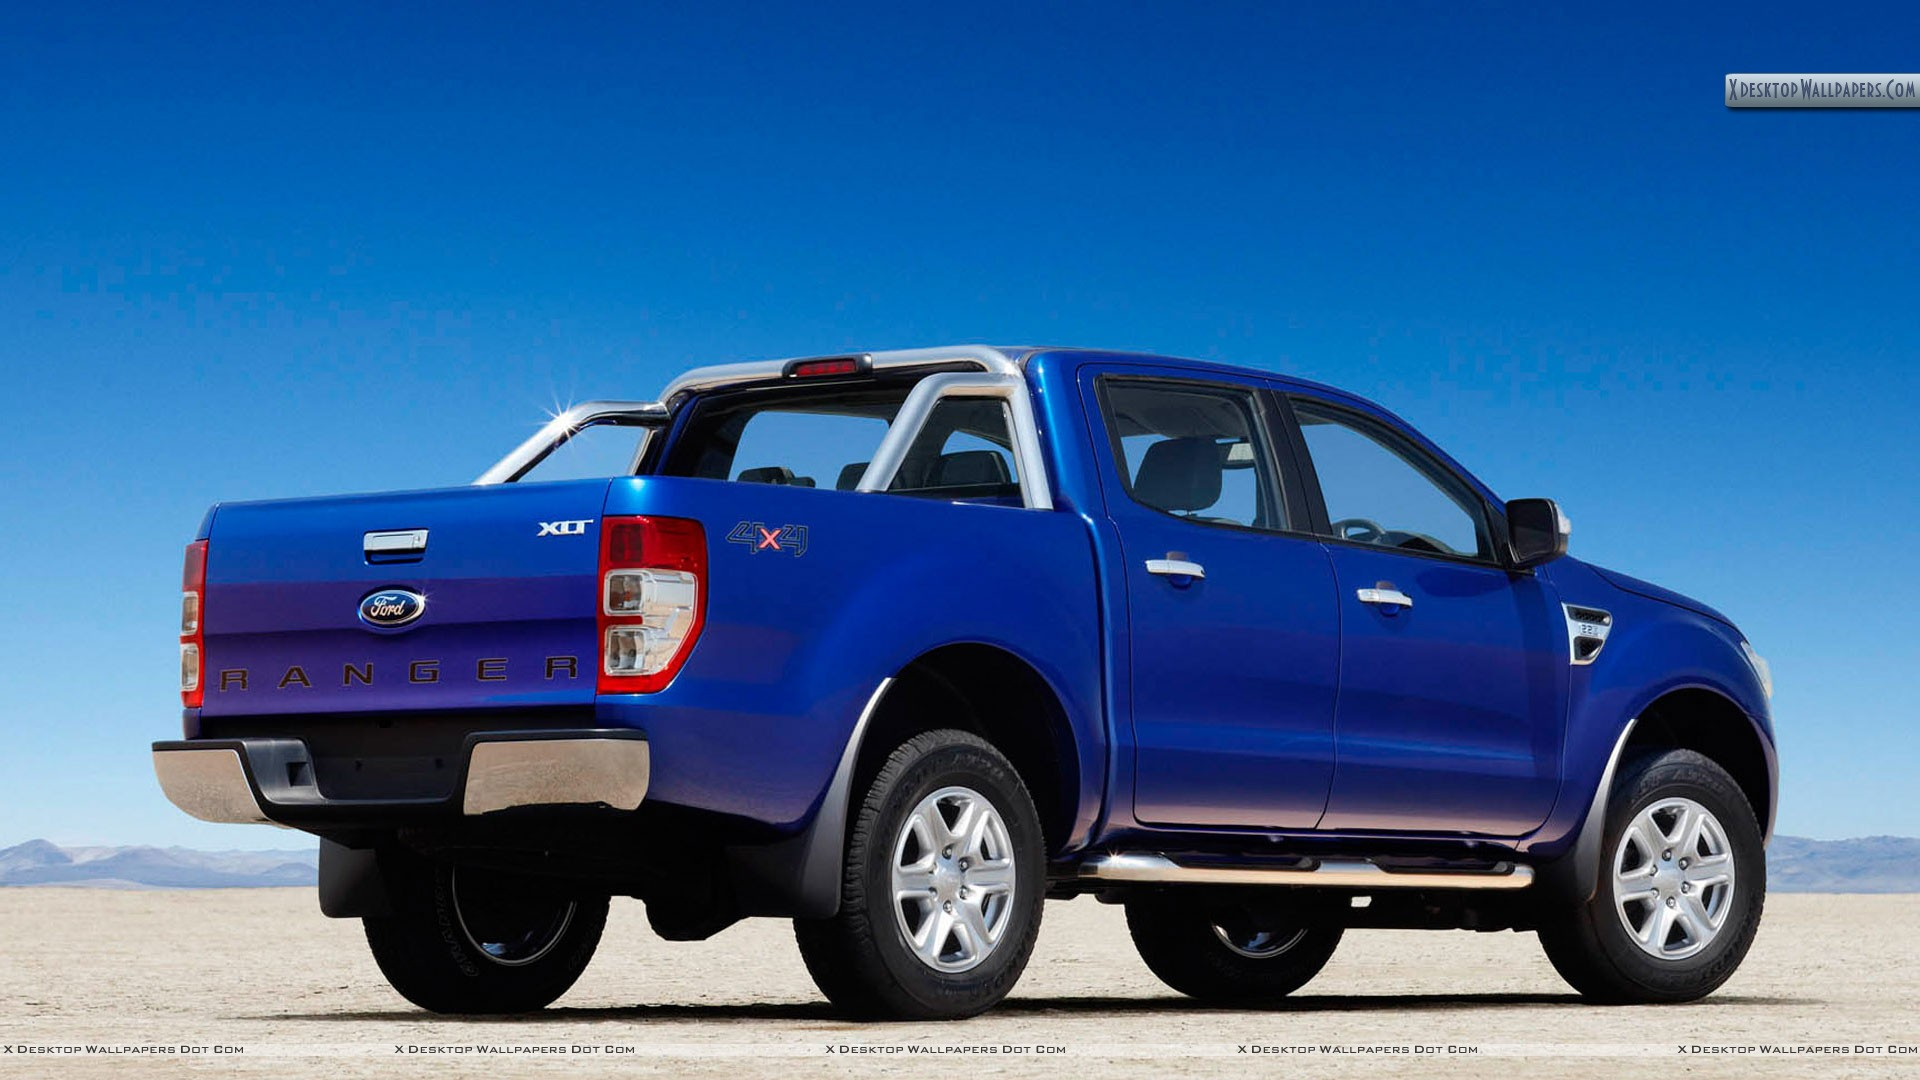 2011 ford ranger wildtrak side view blue color wallpaper. Black Bedroom Furniture Sets. Home Design Ideas